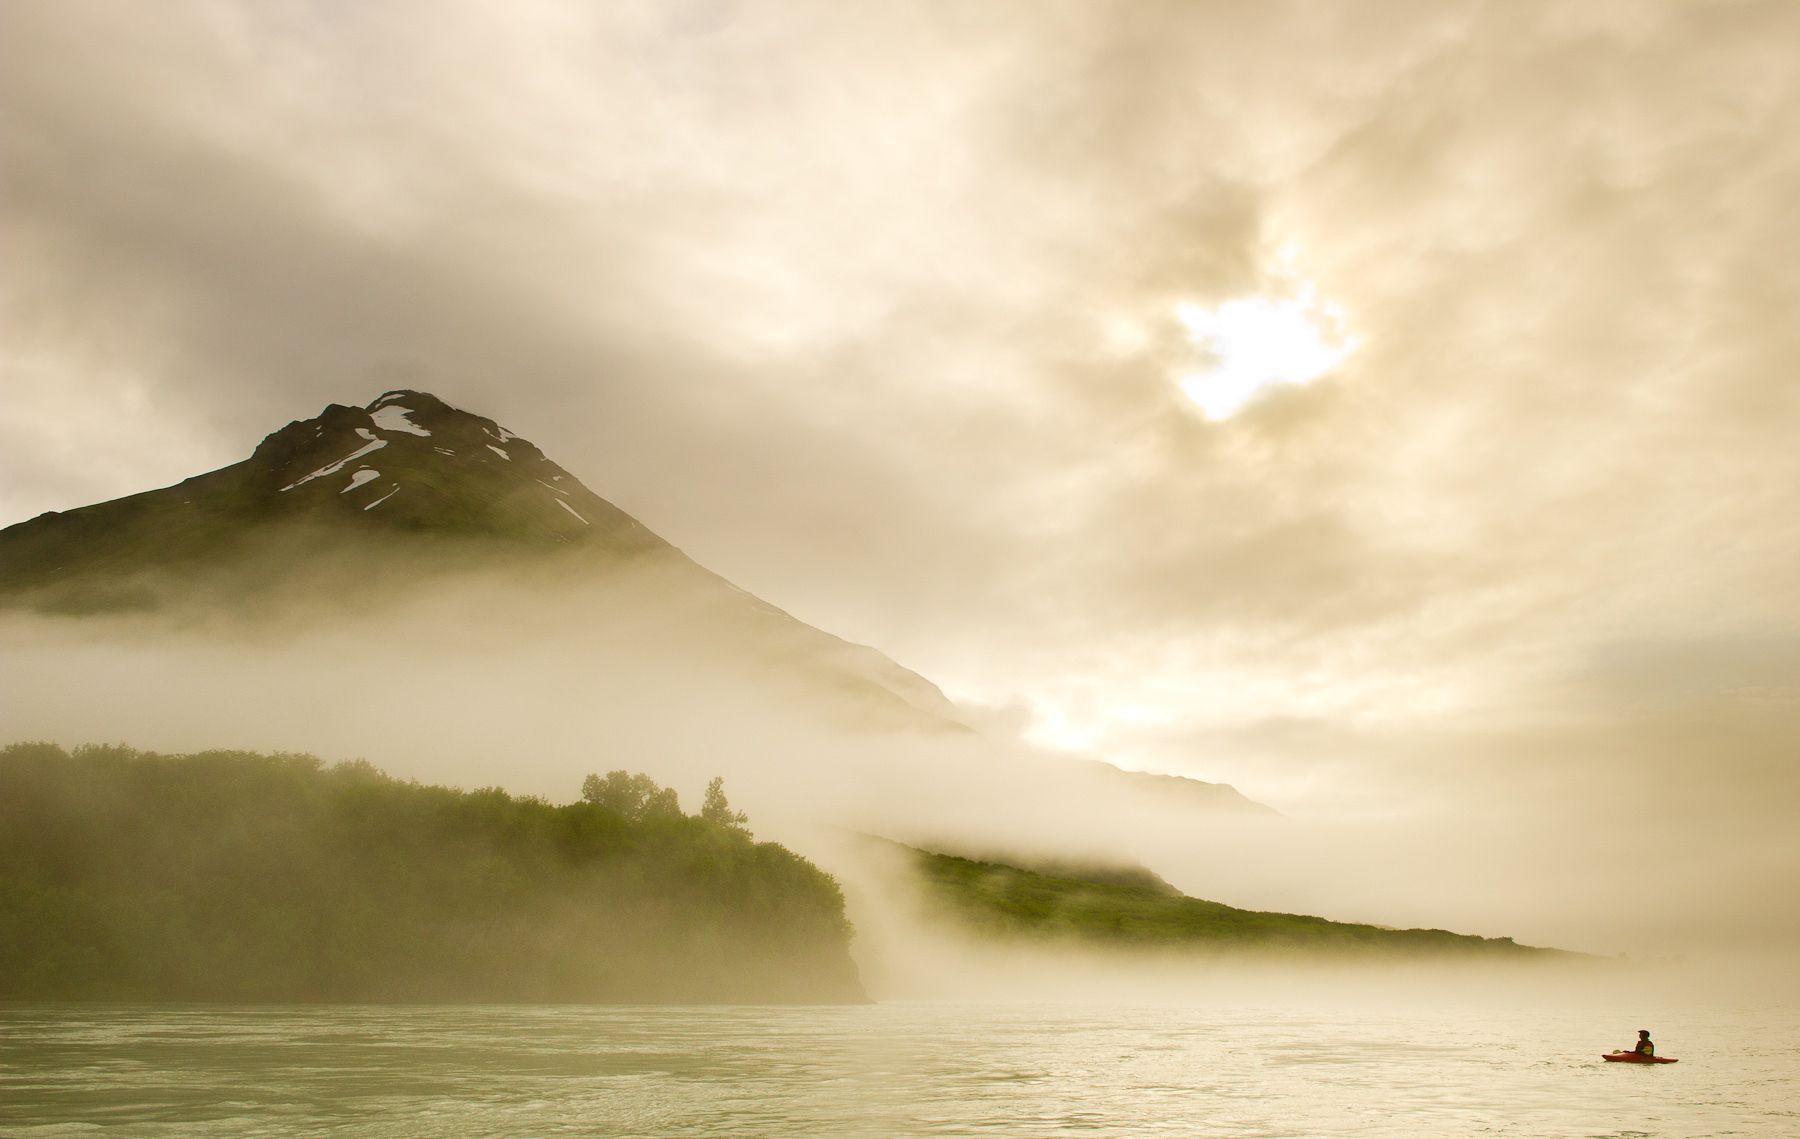 Kayaker engulfed in Marine Fog on the Alsek River